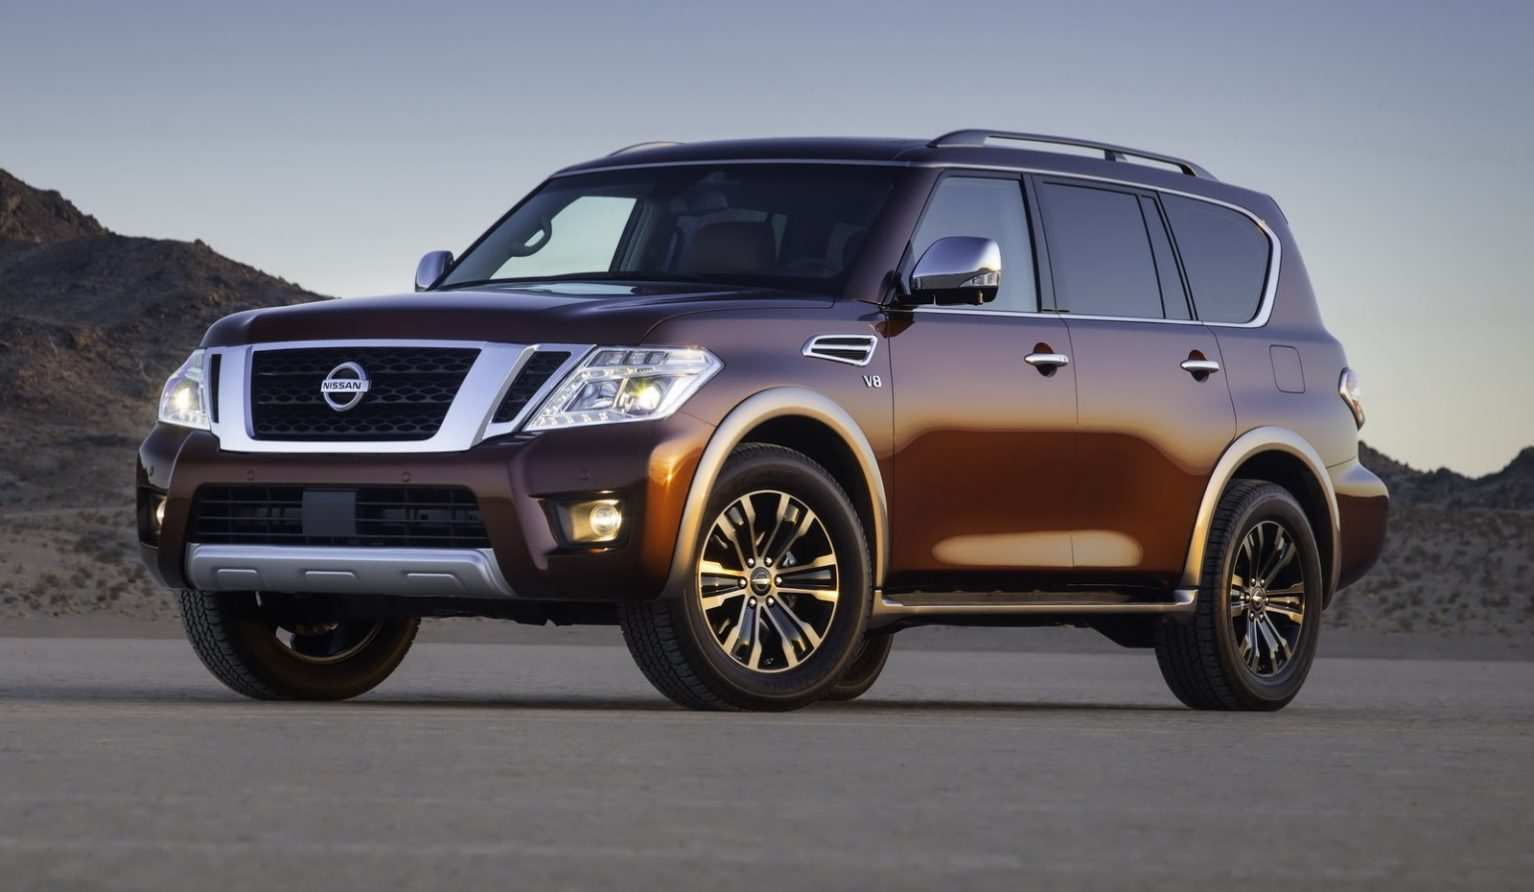 12 All New Best Nissan 2019 Armada Picture Release Date And Review Style with Best Nissan 2019 Armada Picture Release Date And Review